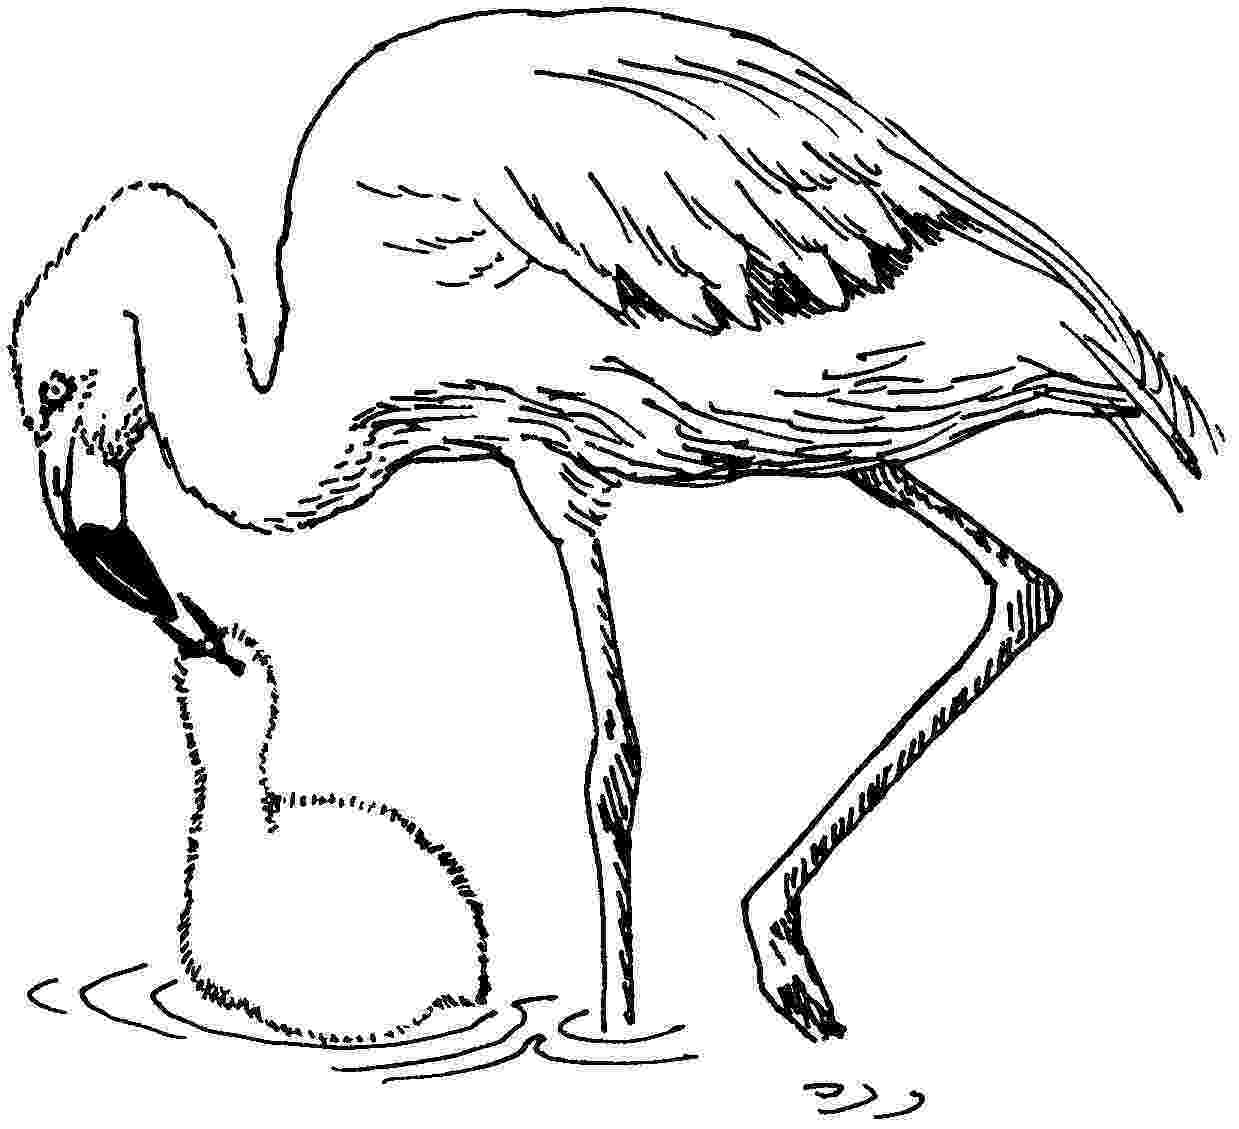 flamingo coloring sheet flamingo coloring pages to download and print for free flamingo coloring sheet